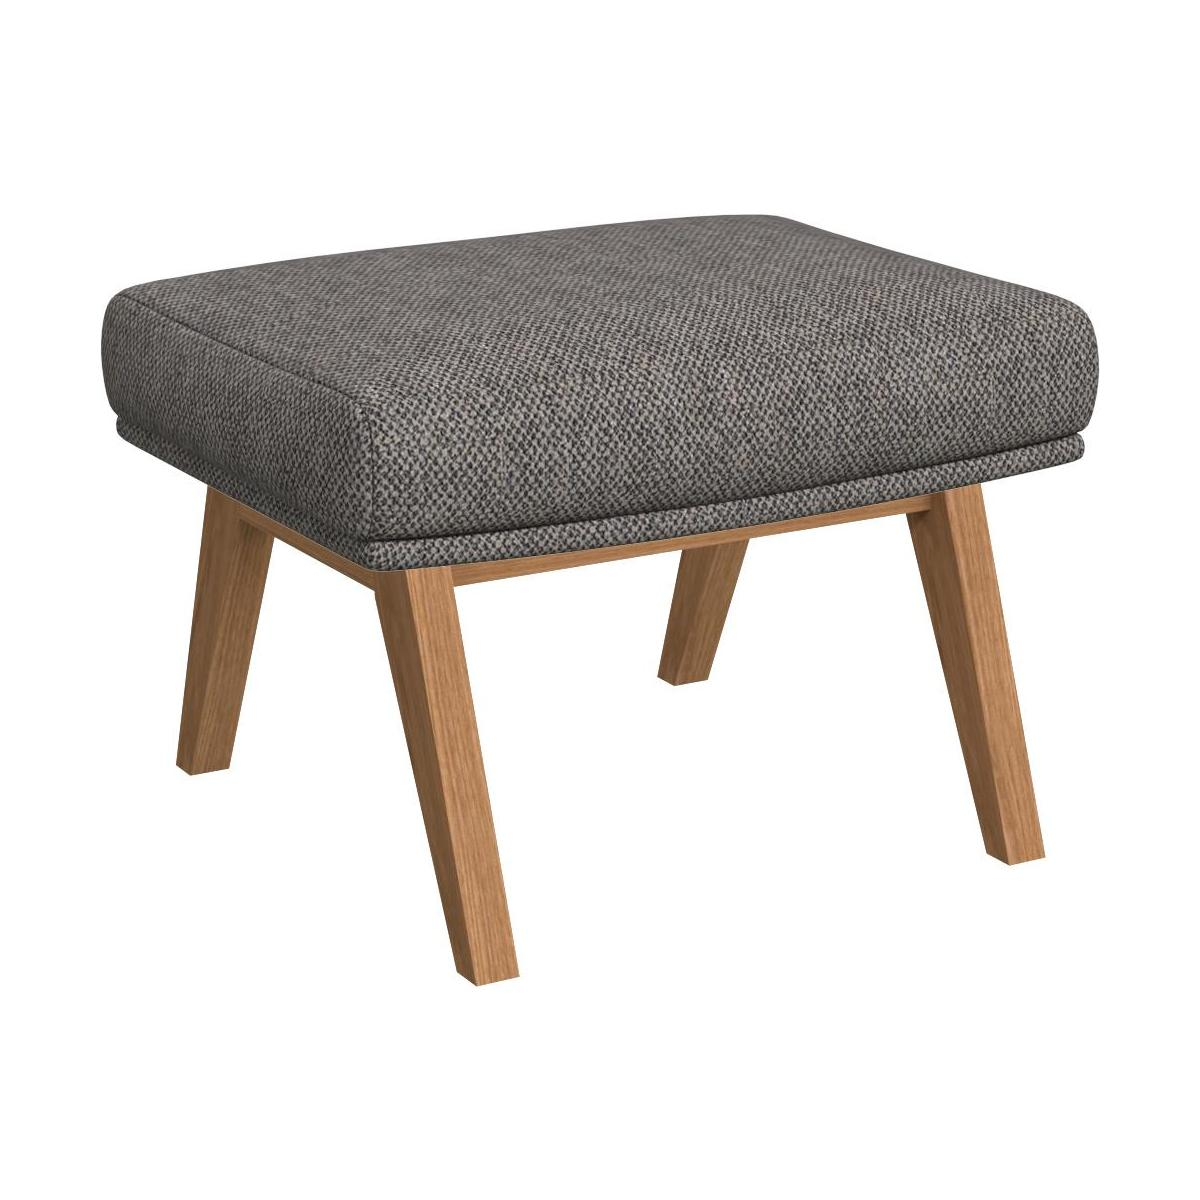 Footstool in Bellagio fabric, night black with oak legs n°1